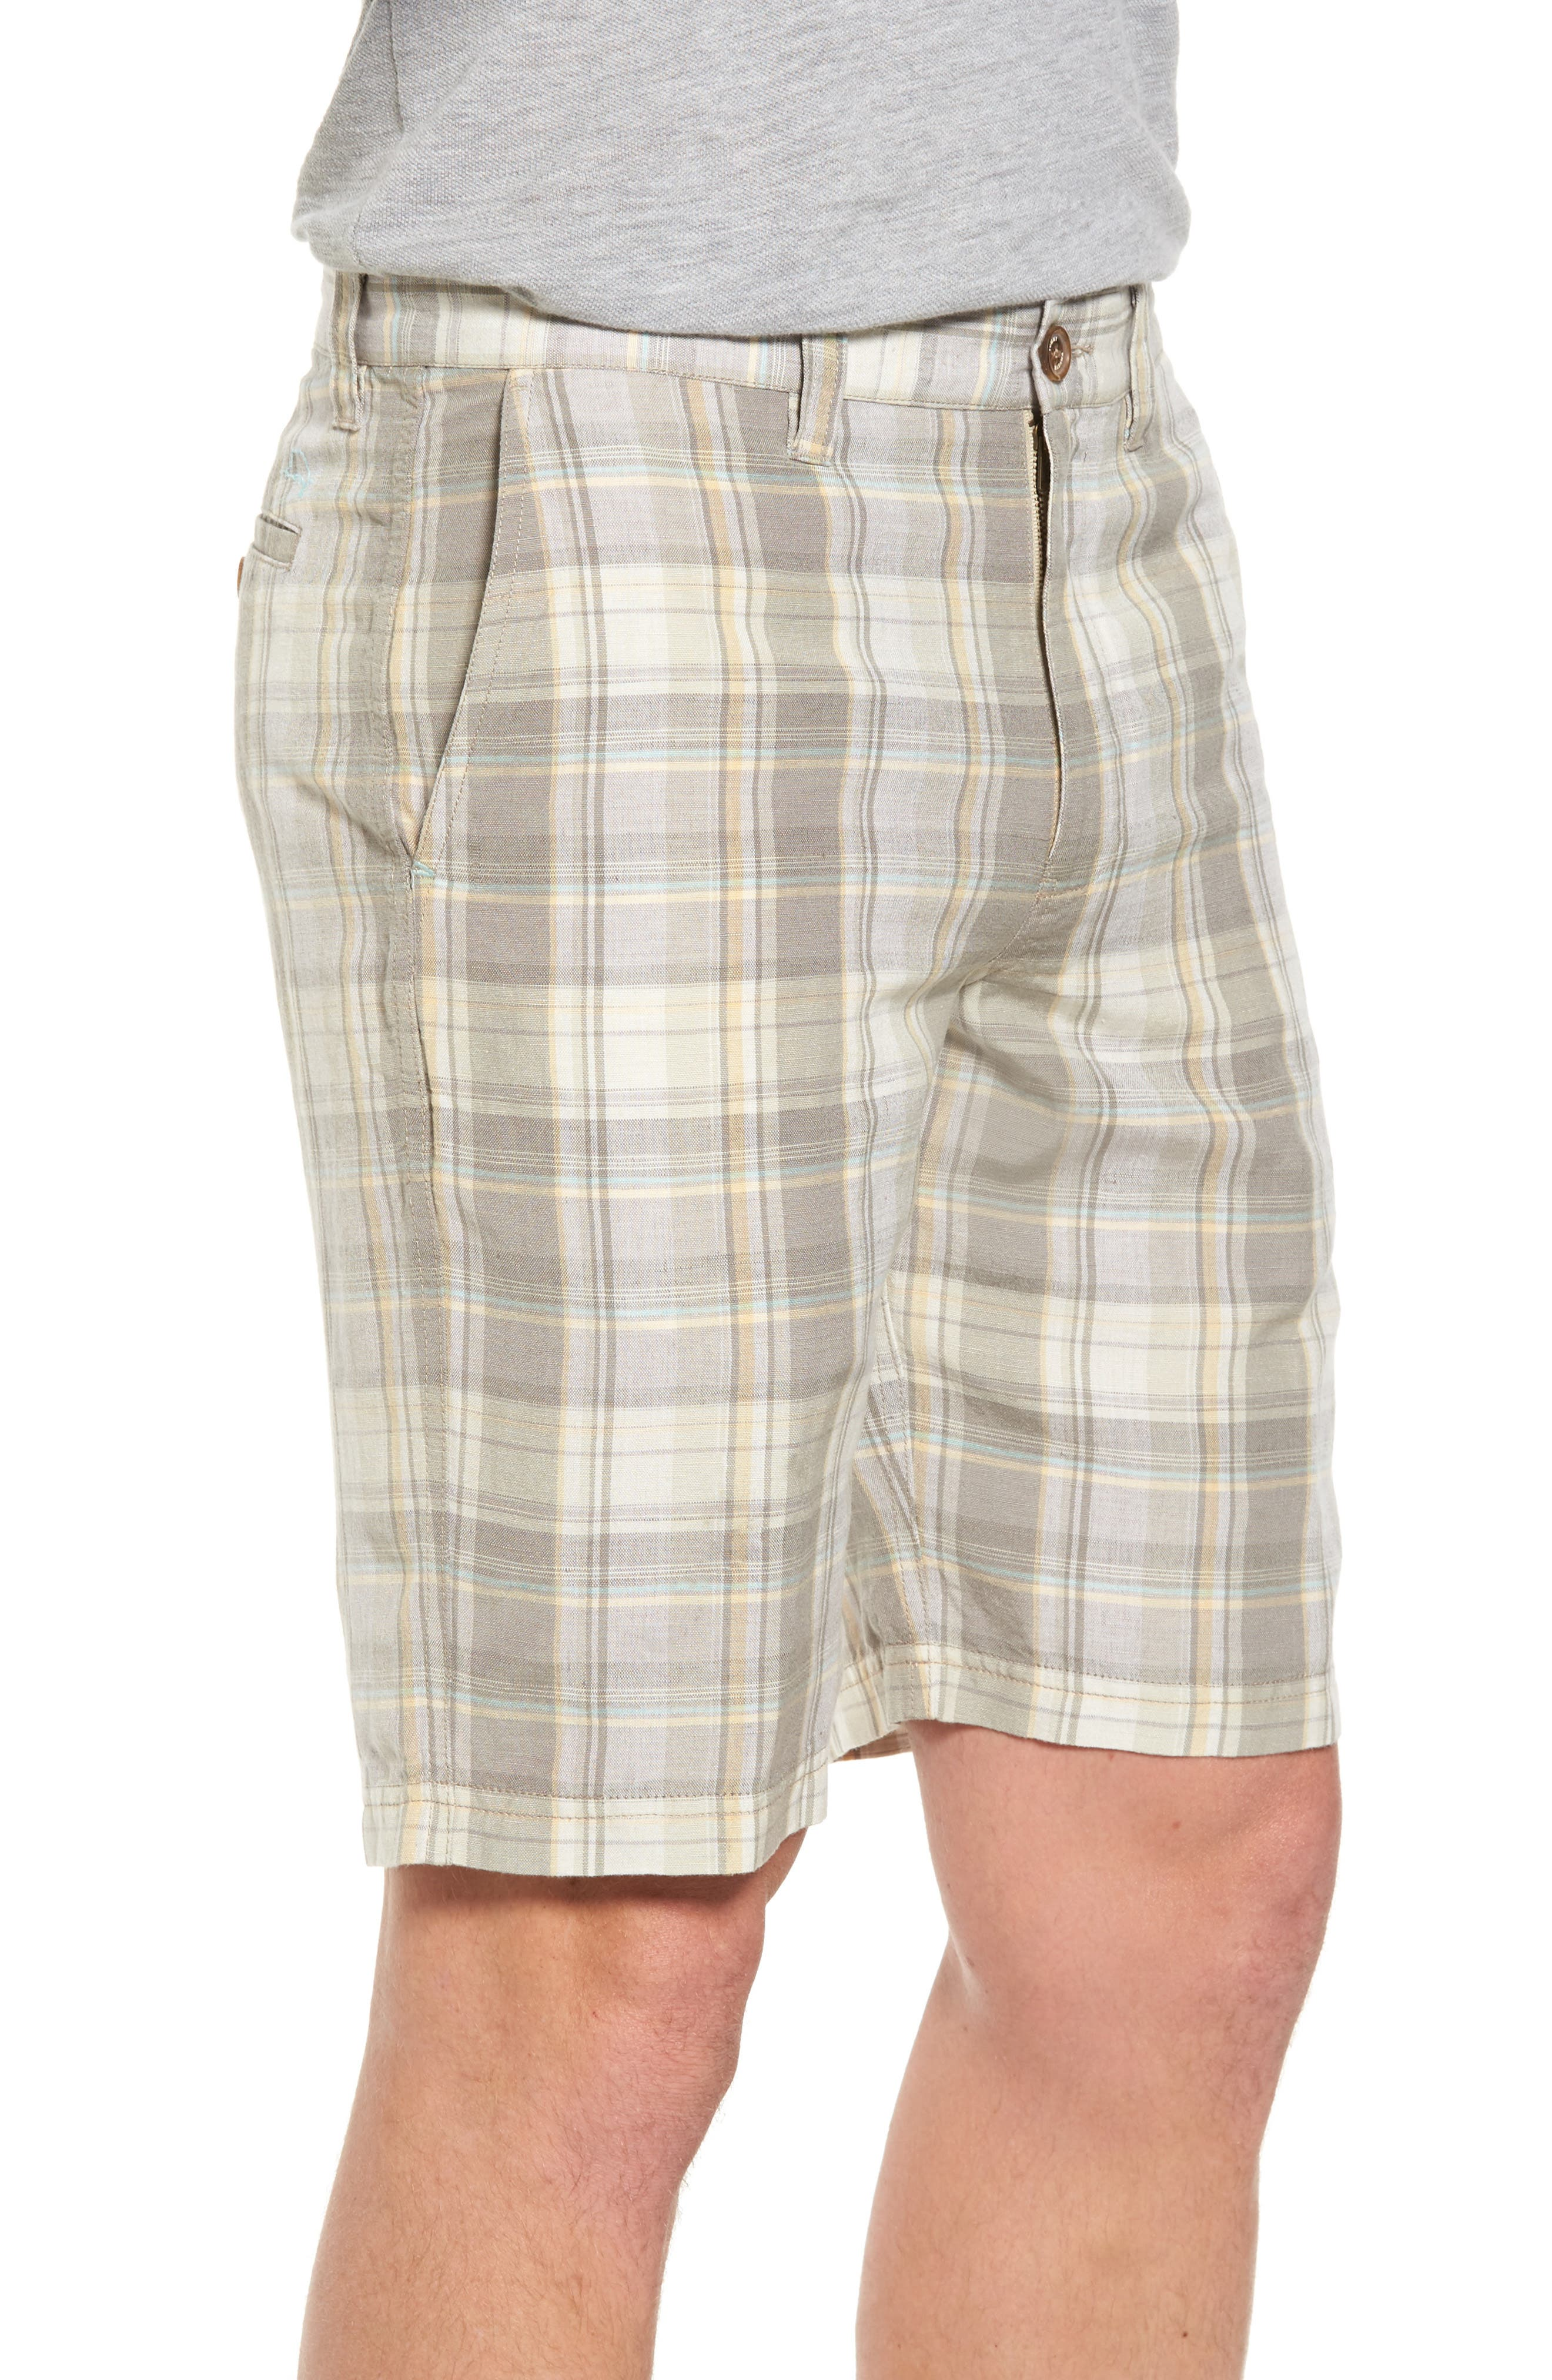 Coastal Dunes Plaid Shorts,                             Alternate thumbnail 3, color,                             250